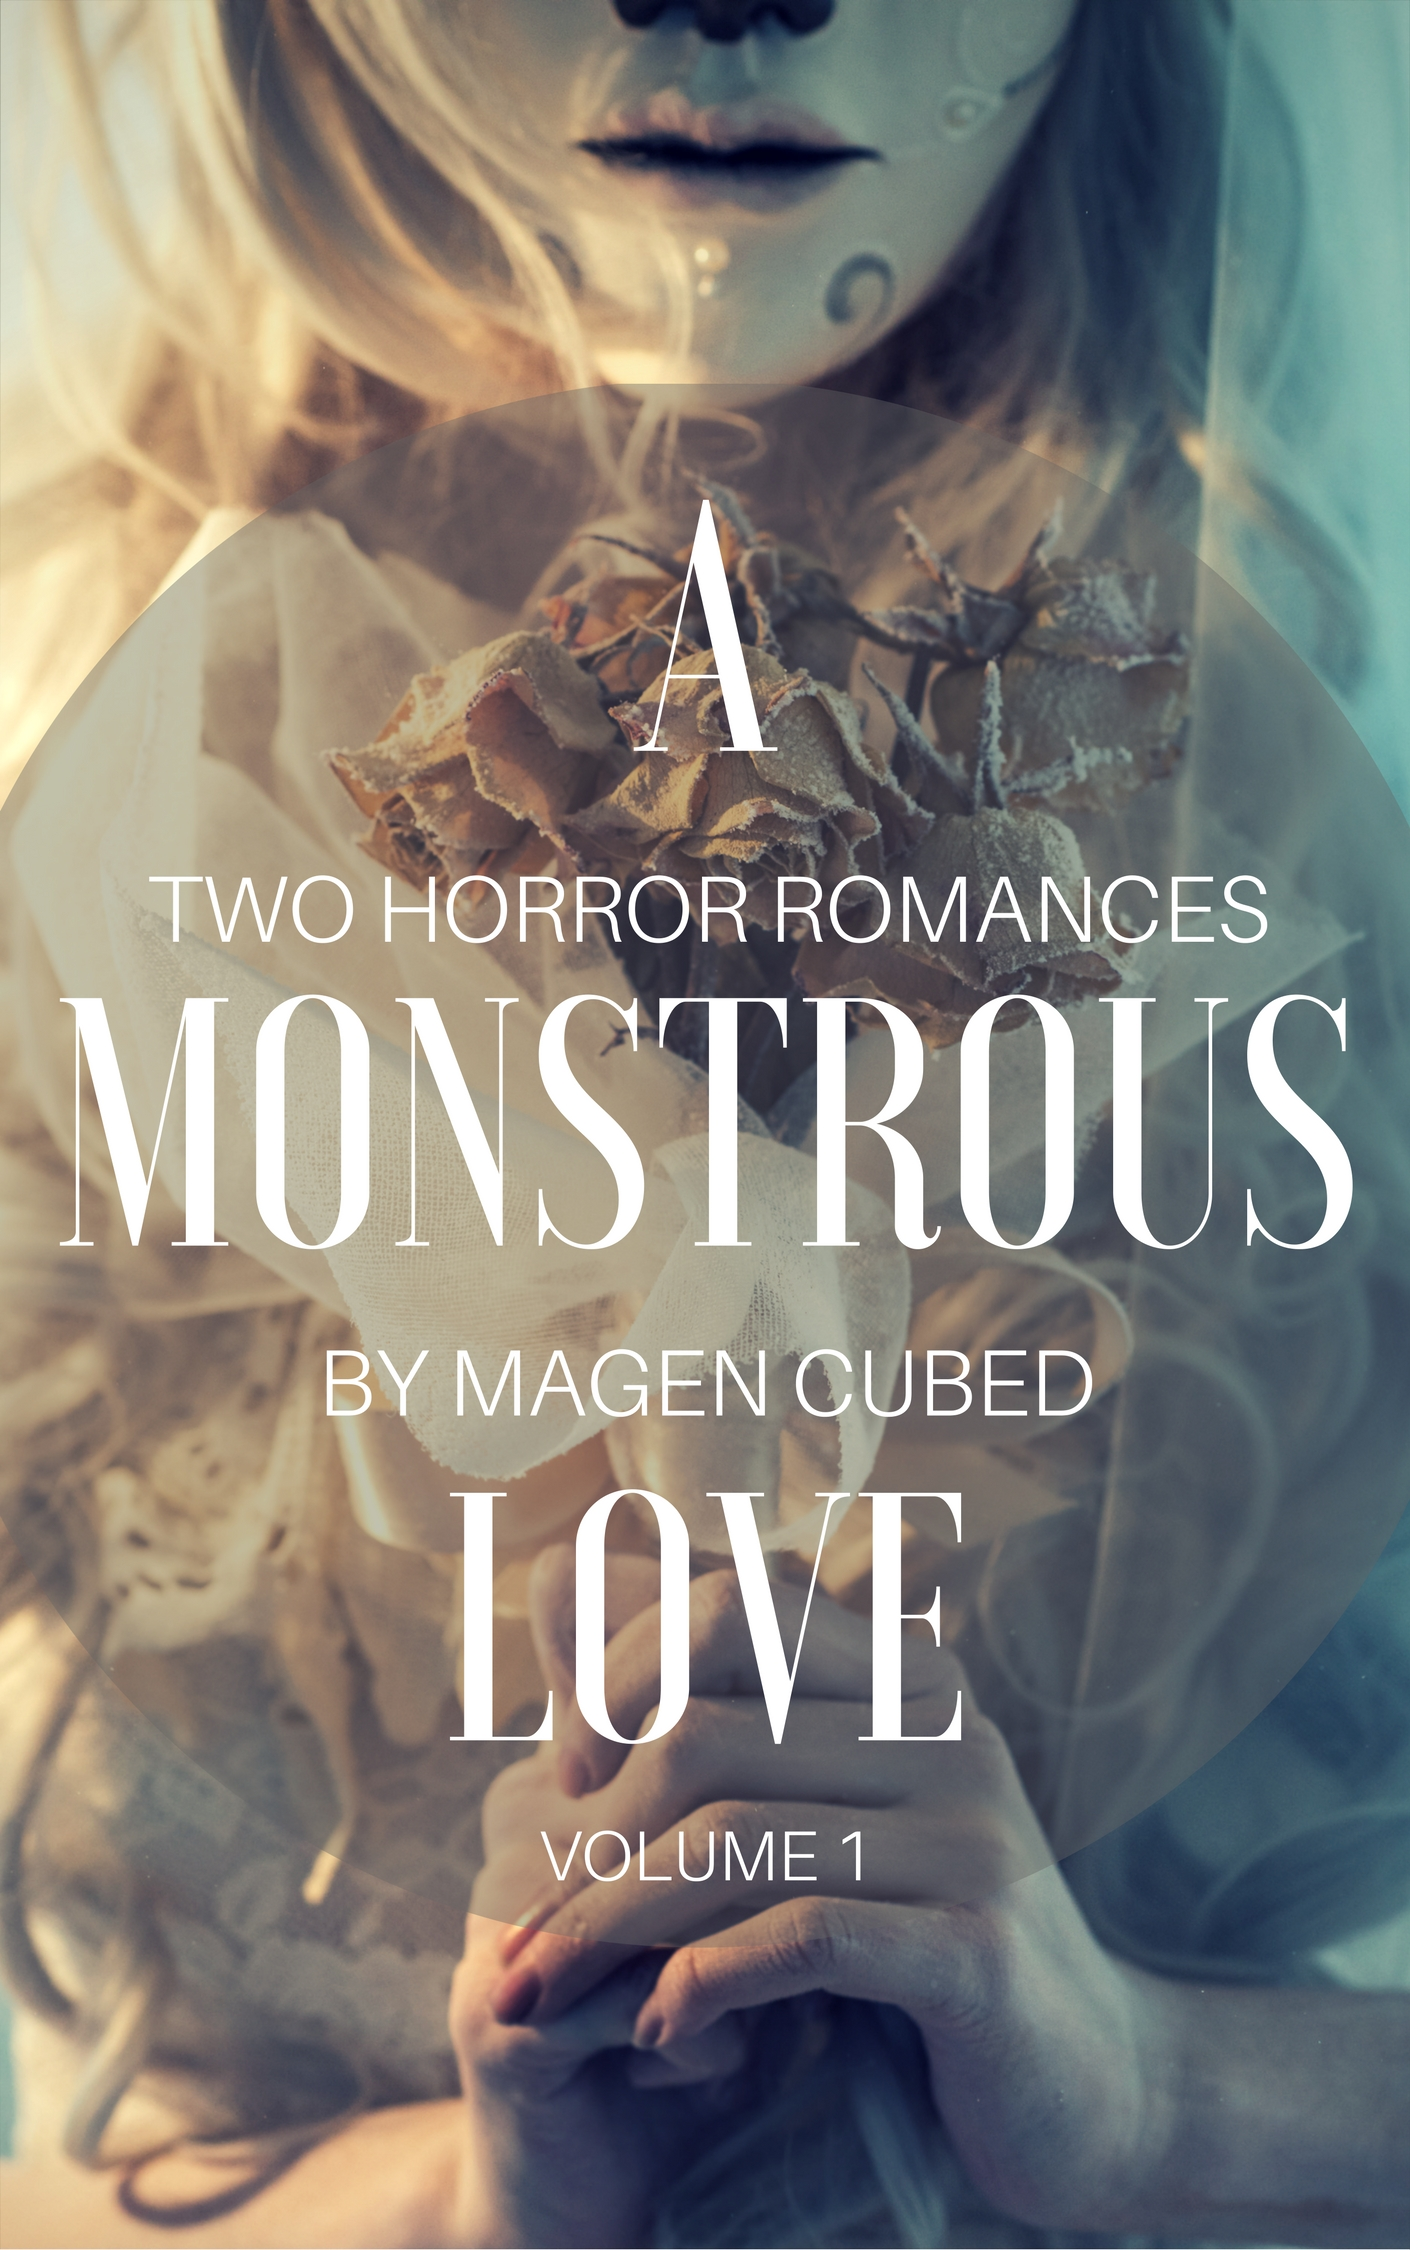 Just in time for Halloween... - Sink your teeth into A MONSTROUS LOVE: Two Horror Romances from Magen Cubed (FLESHTRAP, THE CRASHERS). This mini-collection features two short stories about monstrous women in love, just in time for Halloween. THE HAUNTING OF DIVINIA is an unconventional ghost story, and TASTE tells the story of a young couple with an unusual hobby. If you enjoy your romance on the eerie side, A MONSTROUS LOVE is the perfect short read.AVAILABLE ON AMAZONAVAILABLE ON ITCH.IO